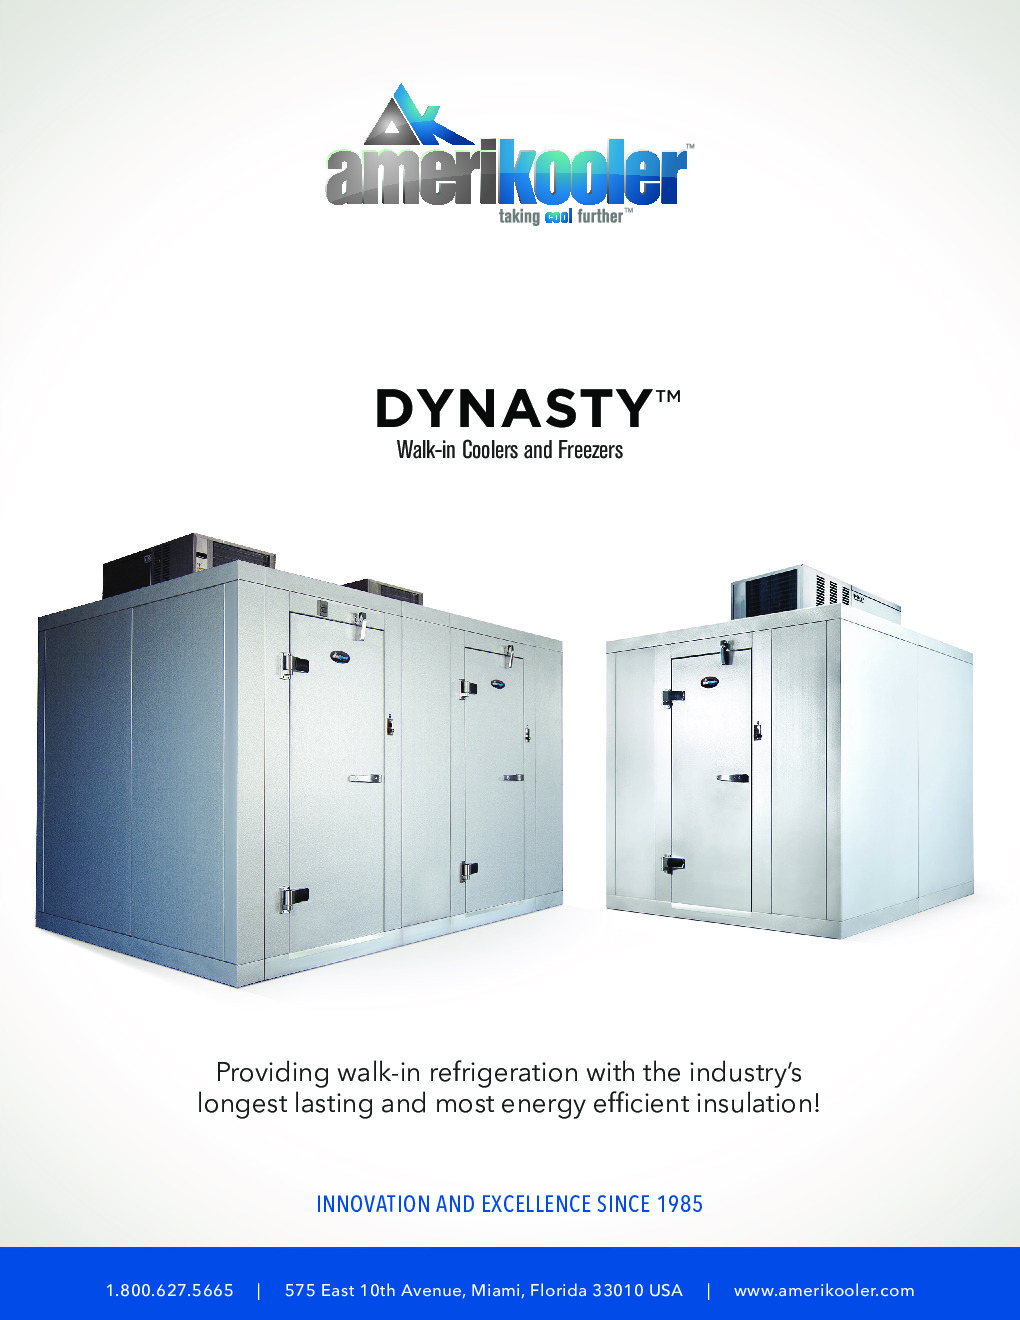 AmeriKooler DW061277F-6/6-SC 6' X 12' Walk-In Cooler, 6' L Cooler with Floor and 6' L Freezer, Self Contained